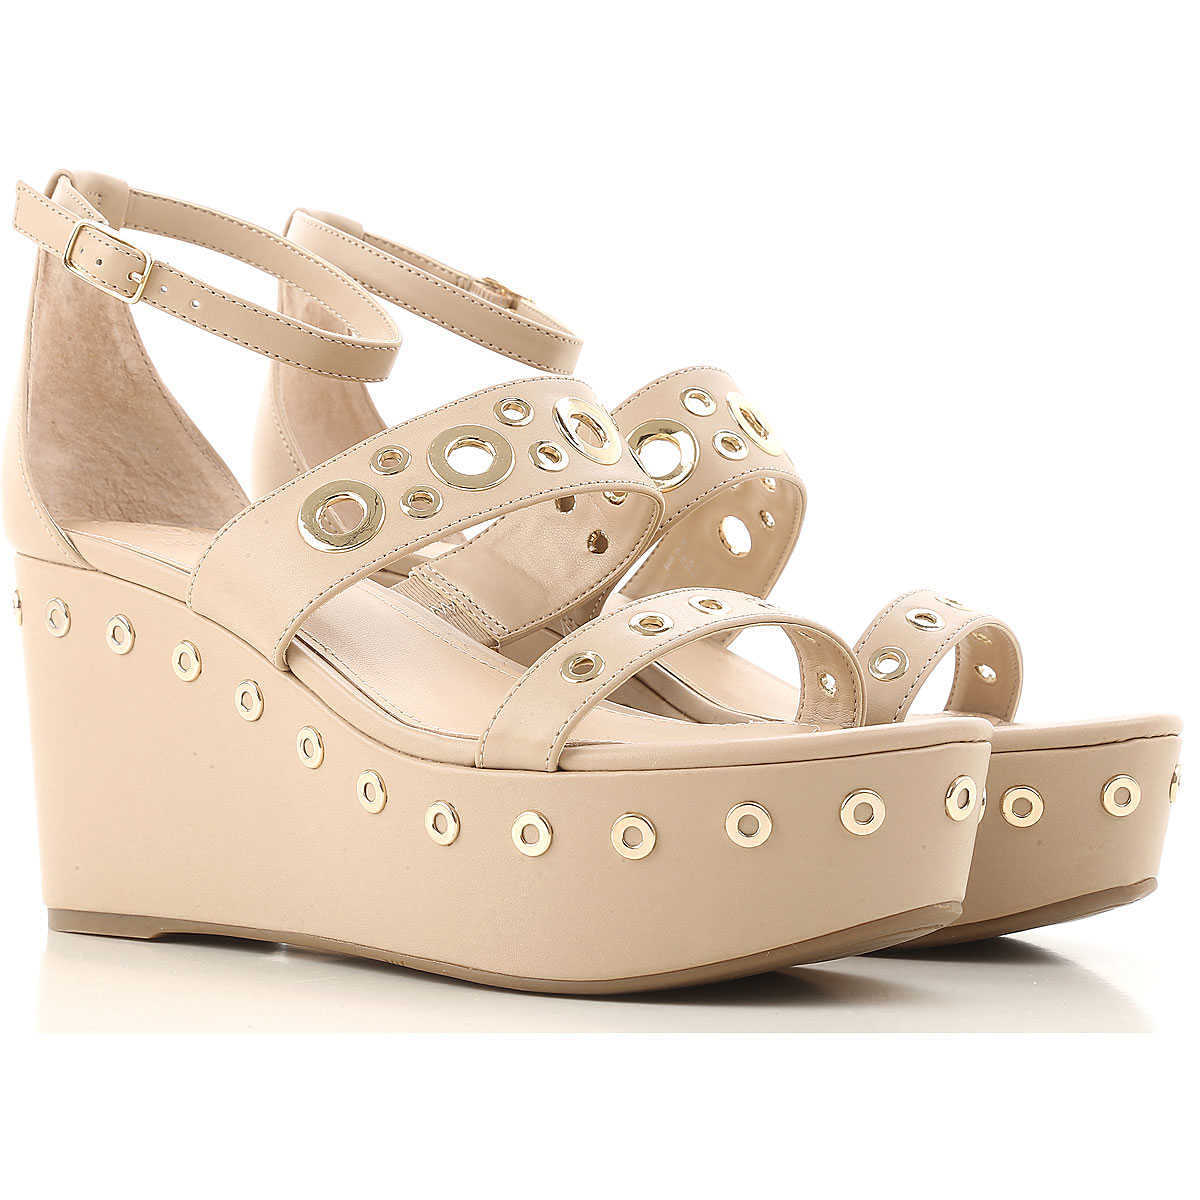 Guess Sandals for Women On Sale in Outlet Camel - GOOFASH